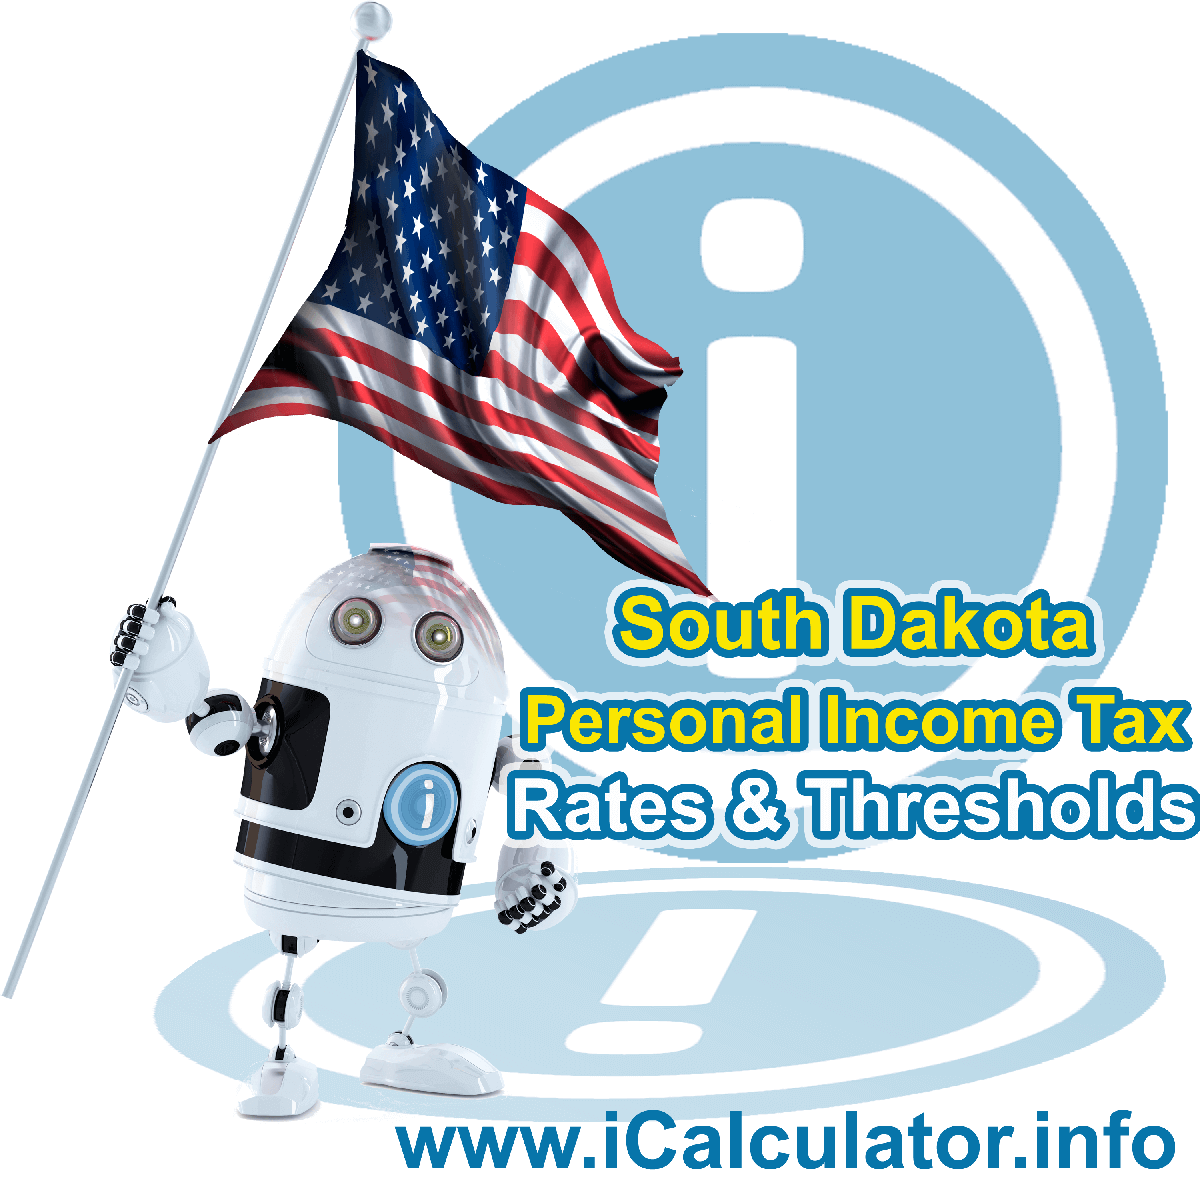 South Dakota State Tax Tables 2015. This image displays details of the South Dakota State Tax Tables for the 2015 tax return year which is provided in support of the 2015 US Tax Calculator